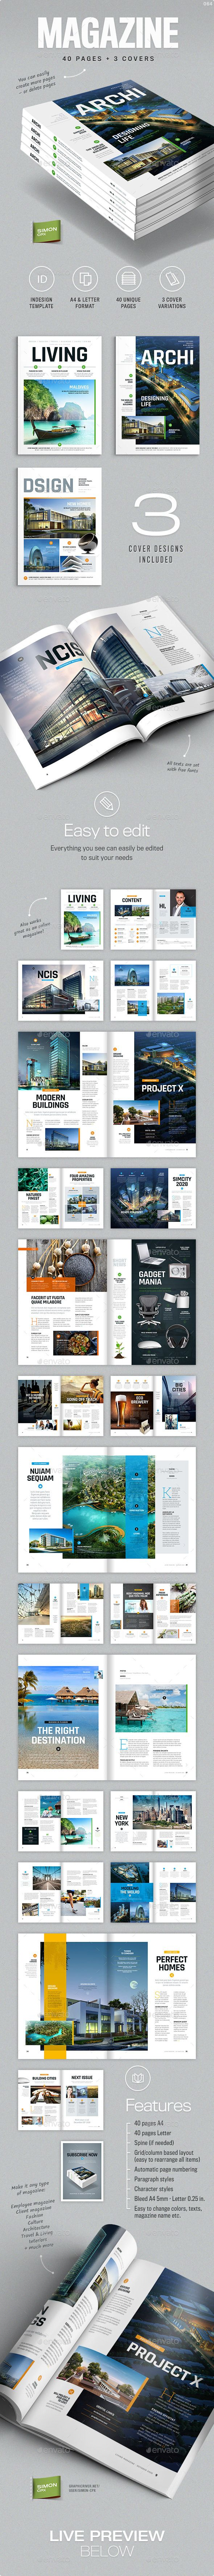 Magazine Template A4 and Letter - Living by simon-cpx Magazine template �20Living Professional, clean and modern magazine �20in both A4 and Letter format. Just drop in your own images a